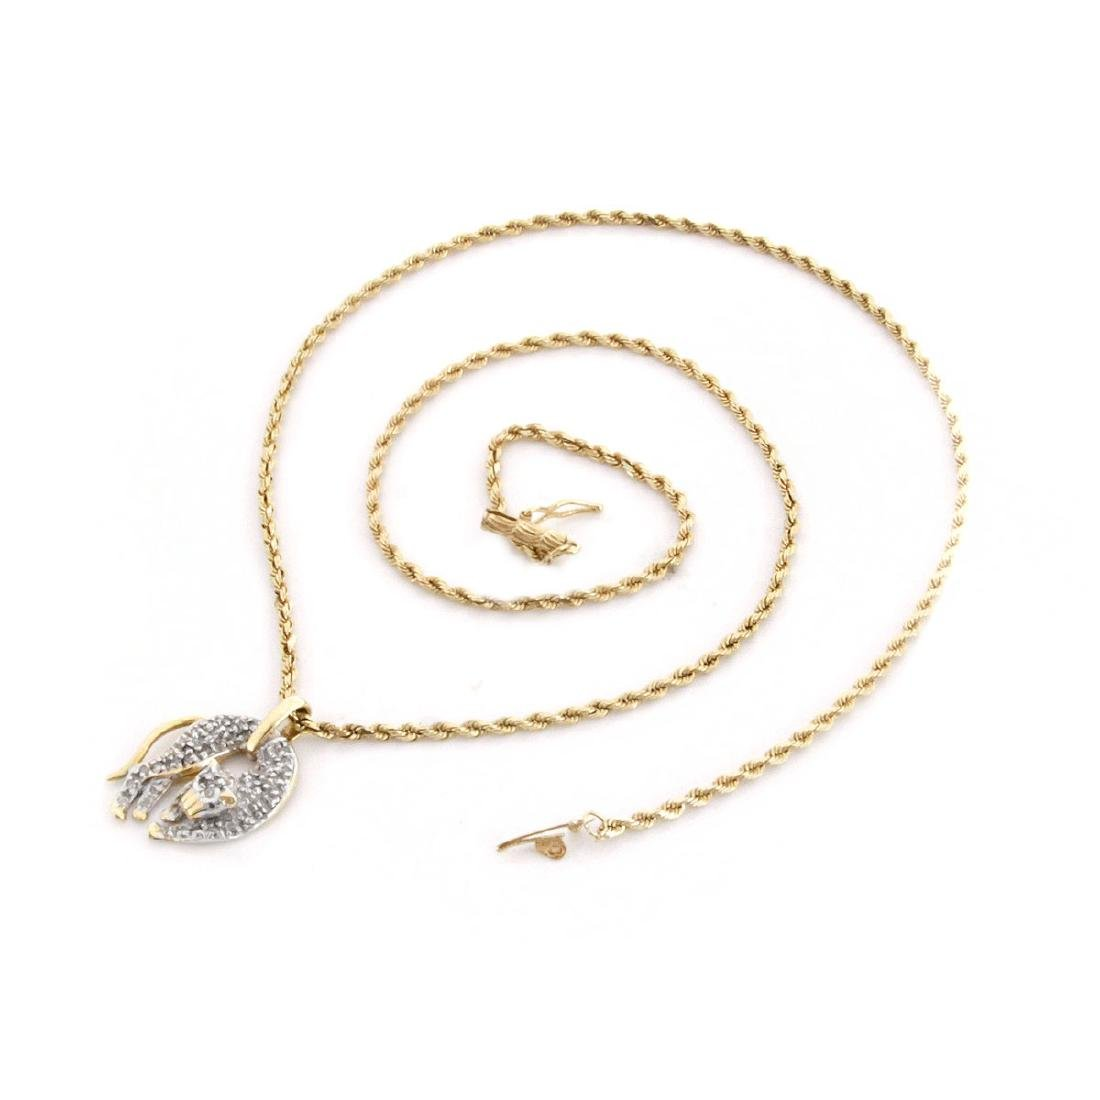 Diamond and 14K Gold Cat Pendant Necklace - 3